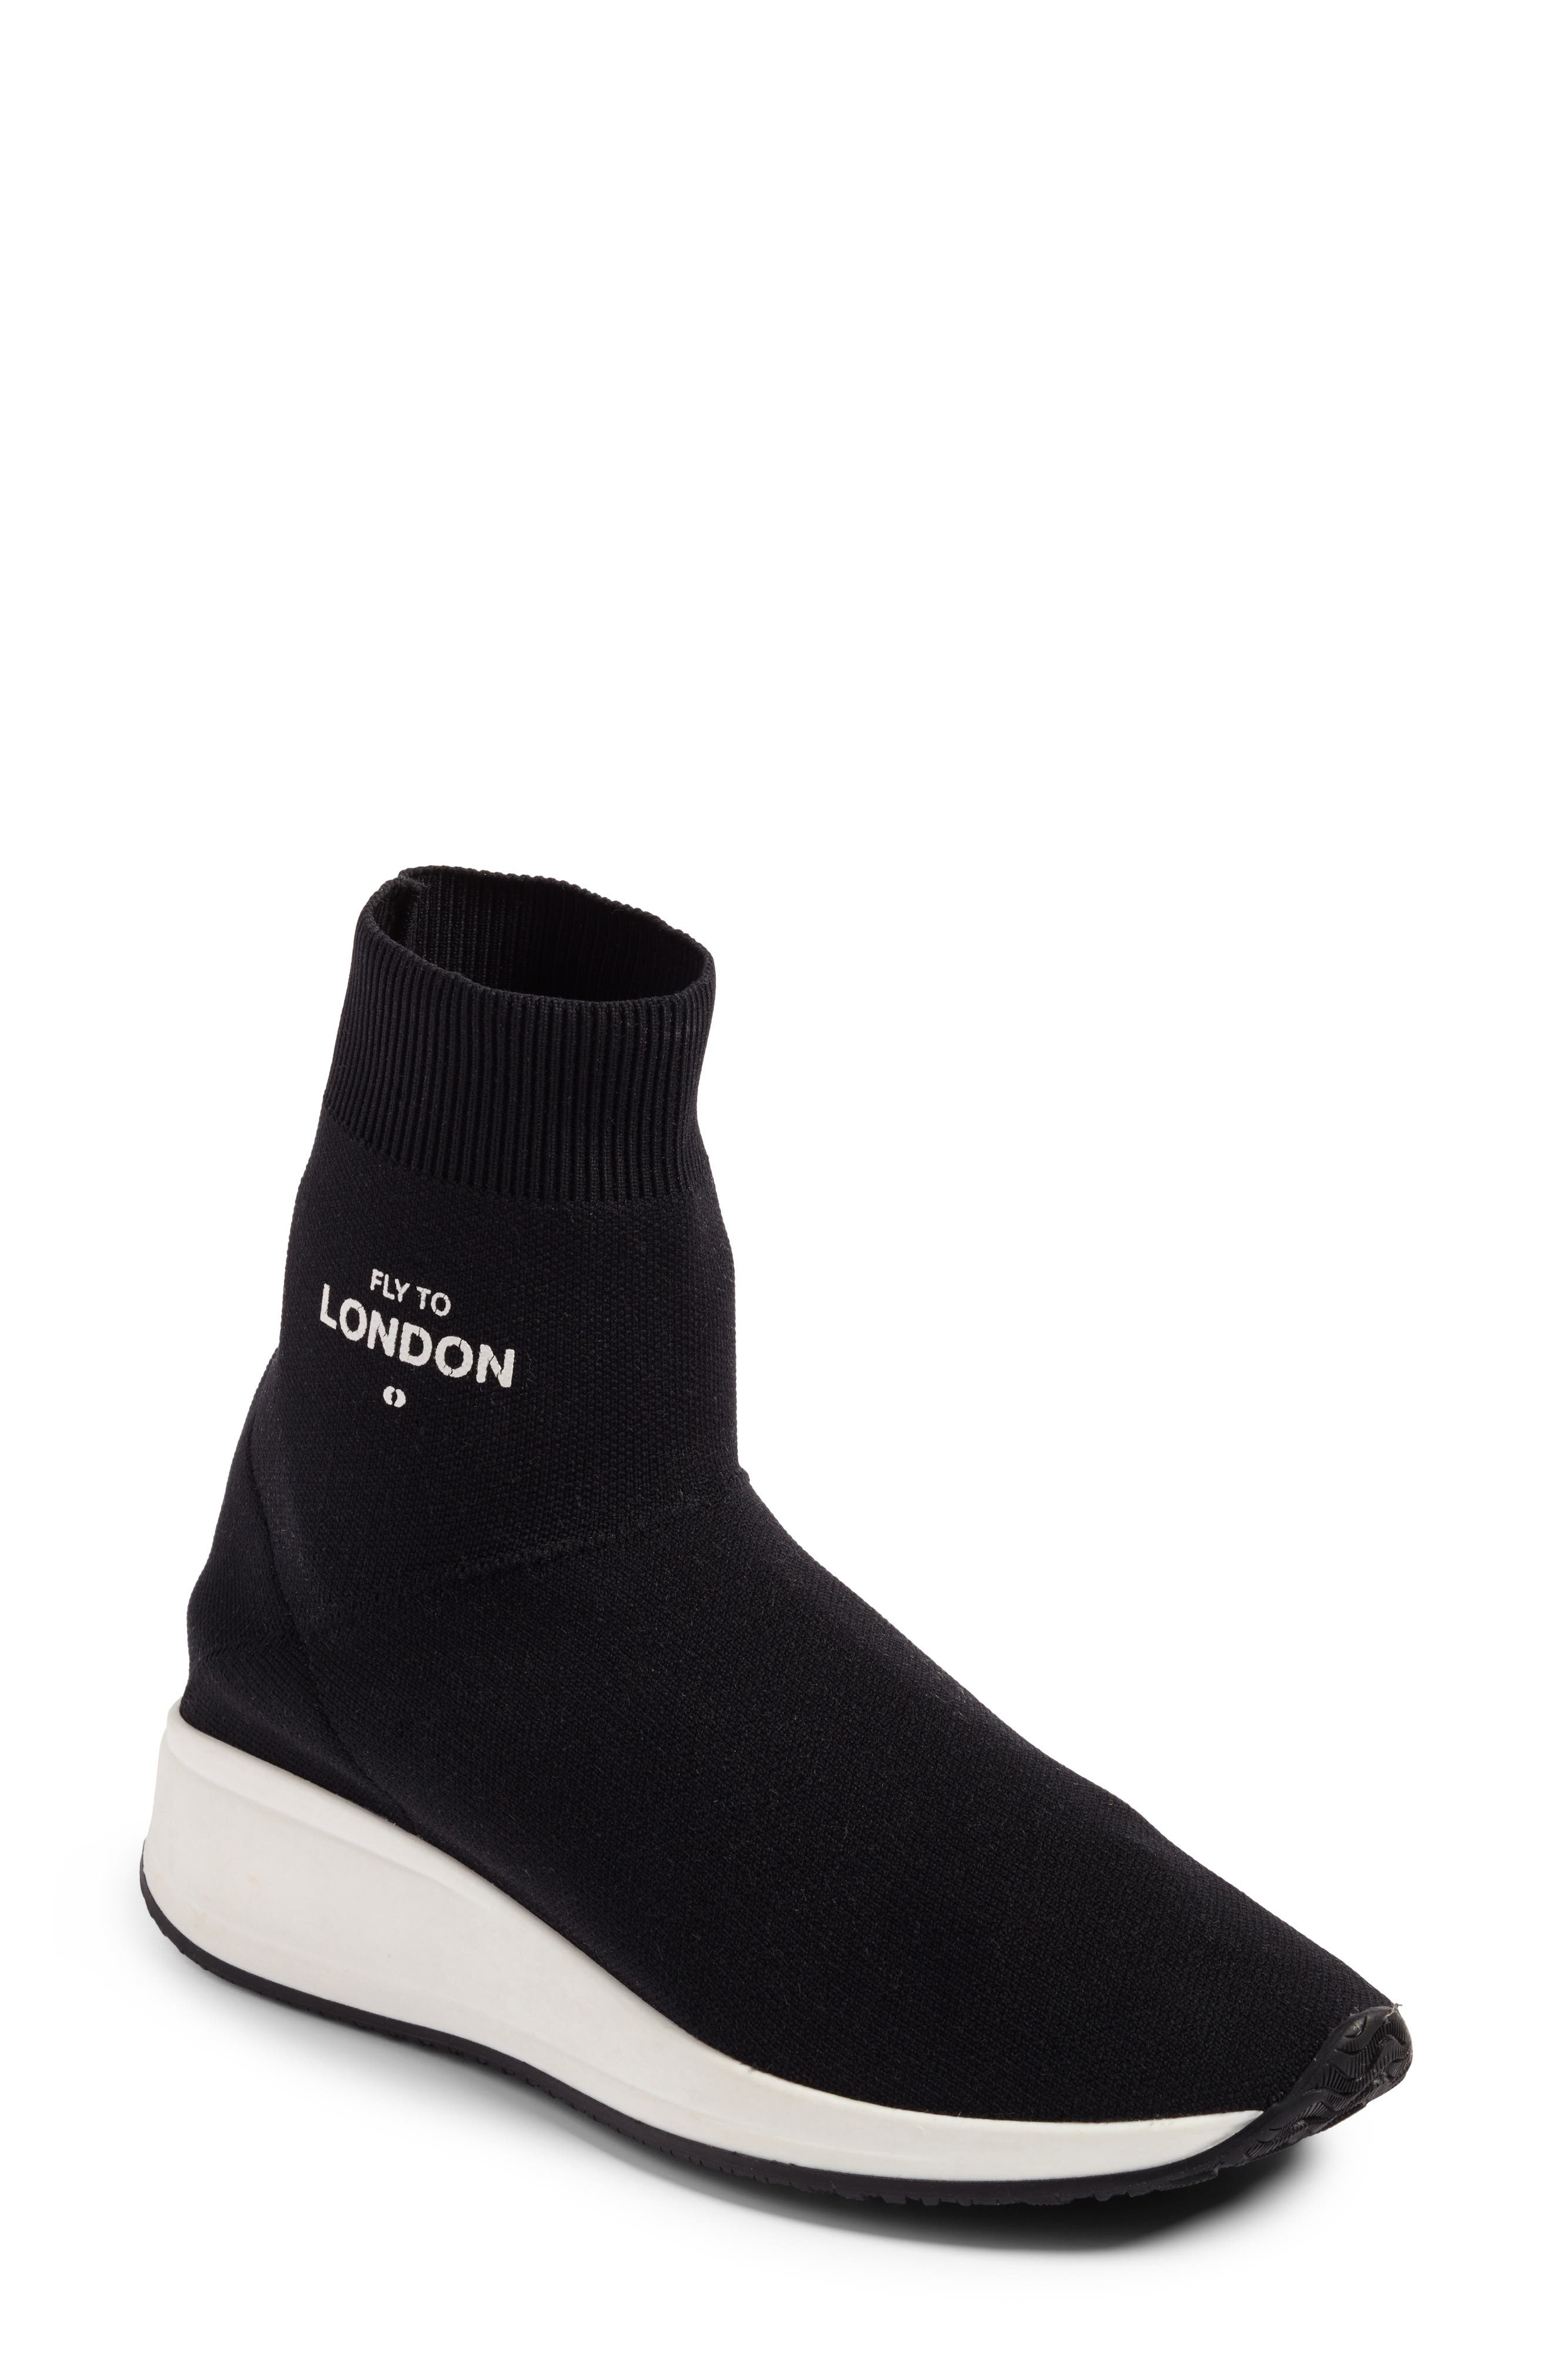 Fly To High Top Sock Sneaker,                             Main thumbnail 1, color,                             002